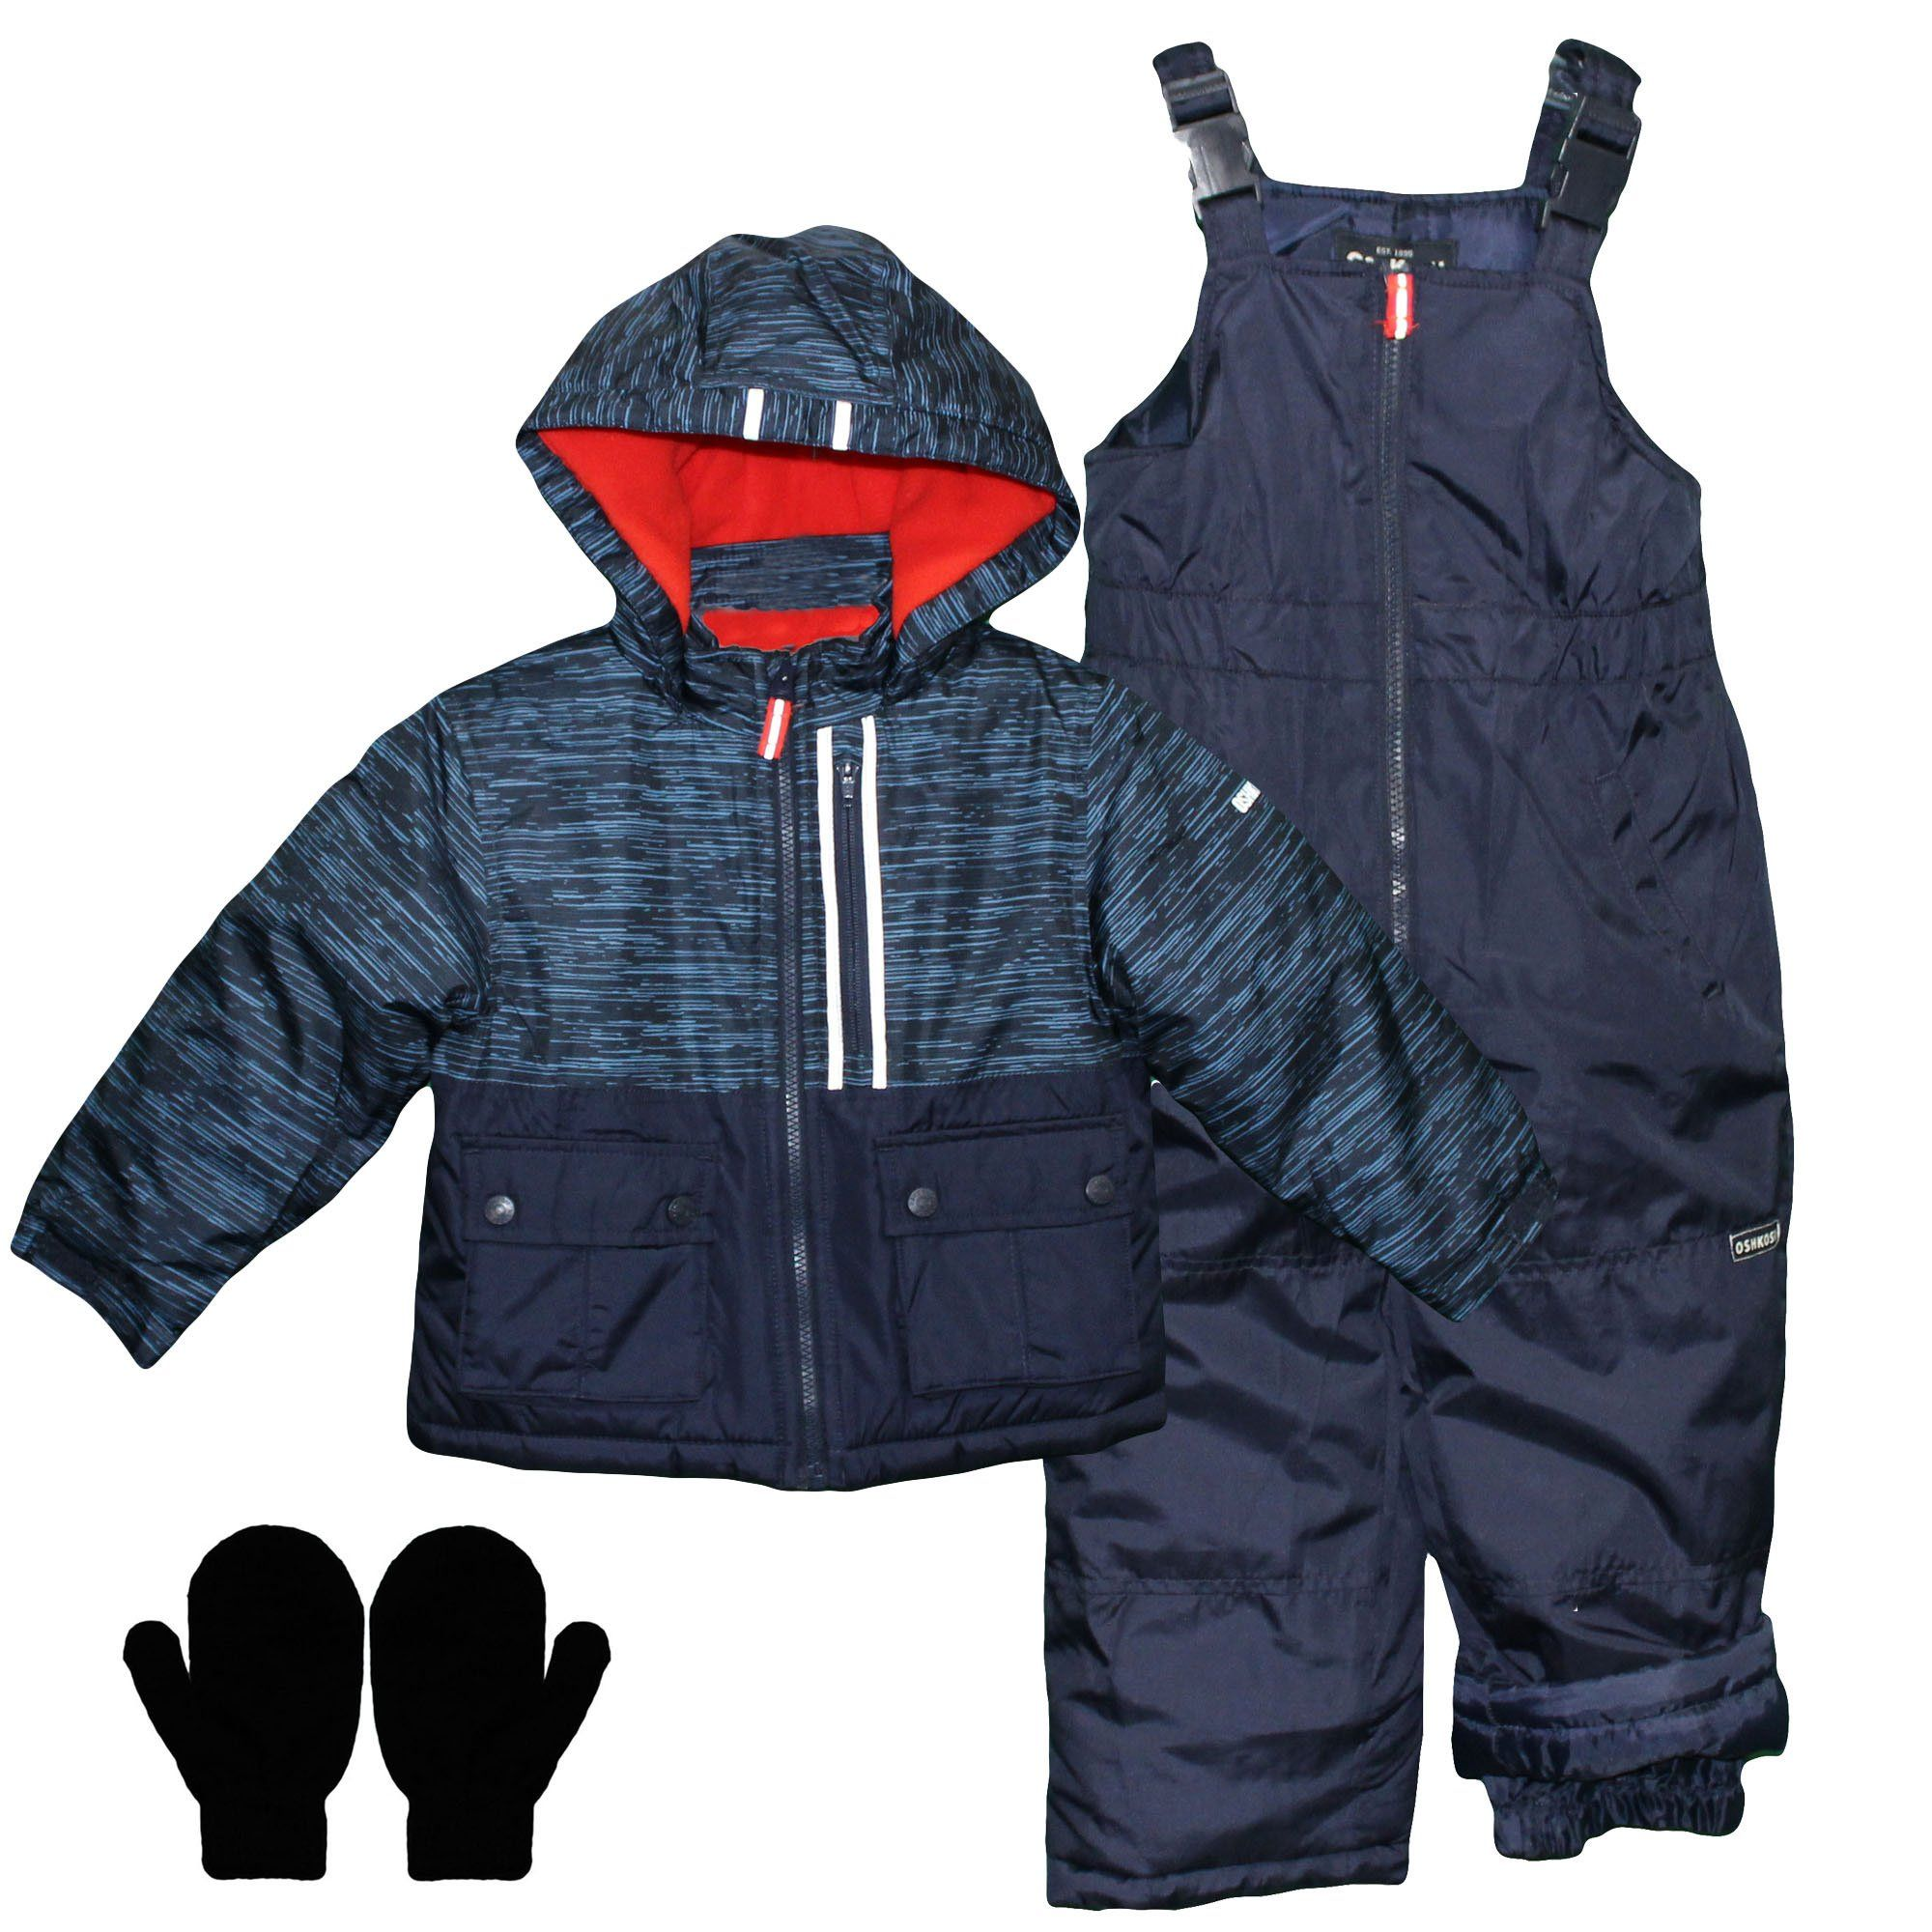 789a0b7eafad OshKosh Toddler Heavy Snow Suit Winter Jacket Snow Pants and Mittens ...